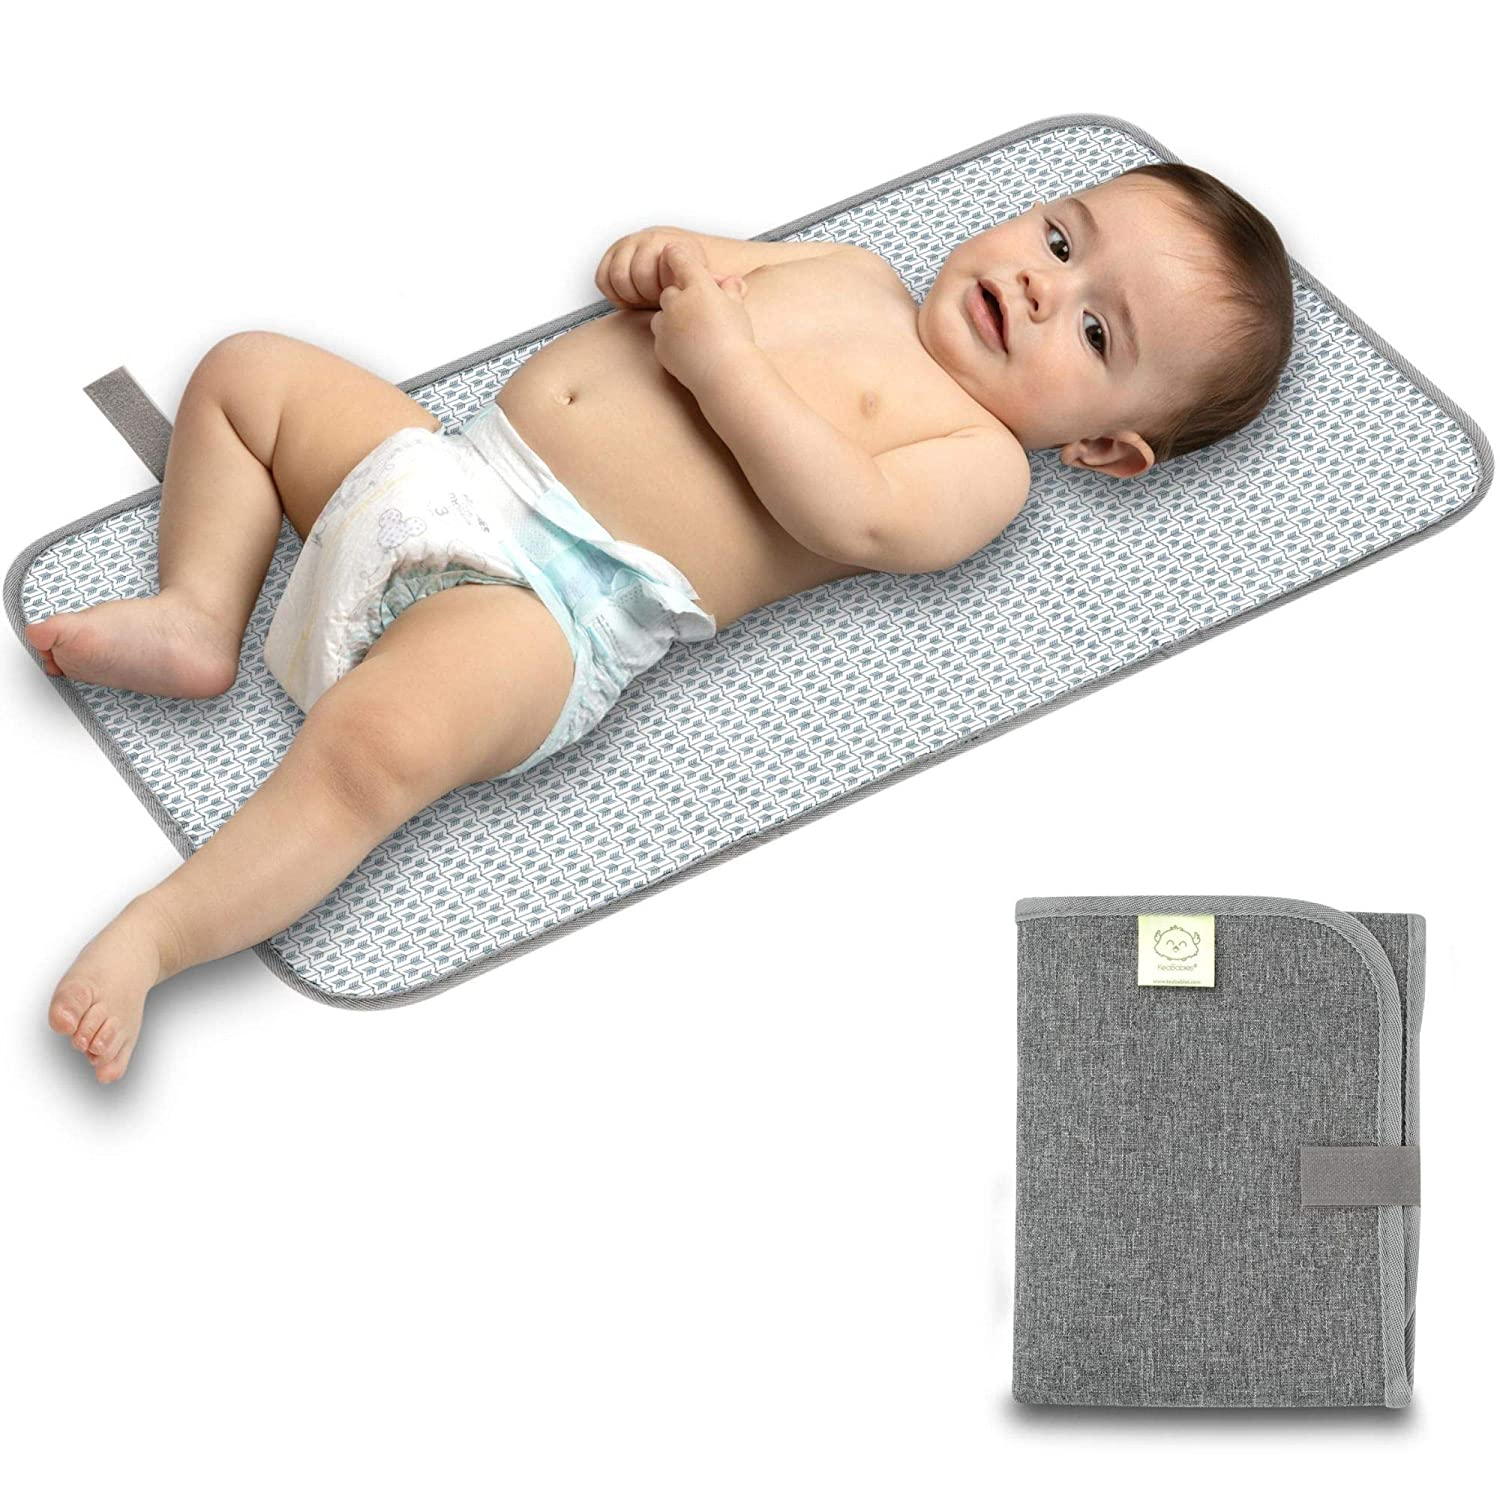 Portable Changing Pad Waterproof Diaper Change Mat Large Size Multi-Function Mat Any Places Bed Play Stroller Crib Car Mattress Pad Cover Home /& Travel Frog /& Giraffe, XL 27.56 x 47.2 Inch